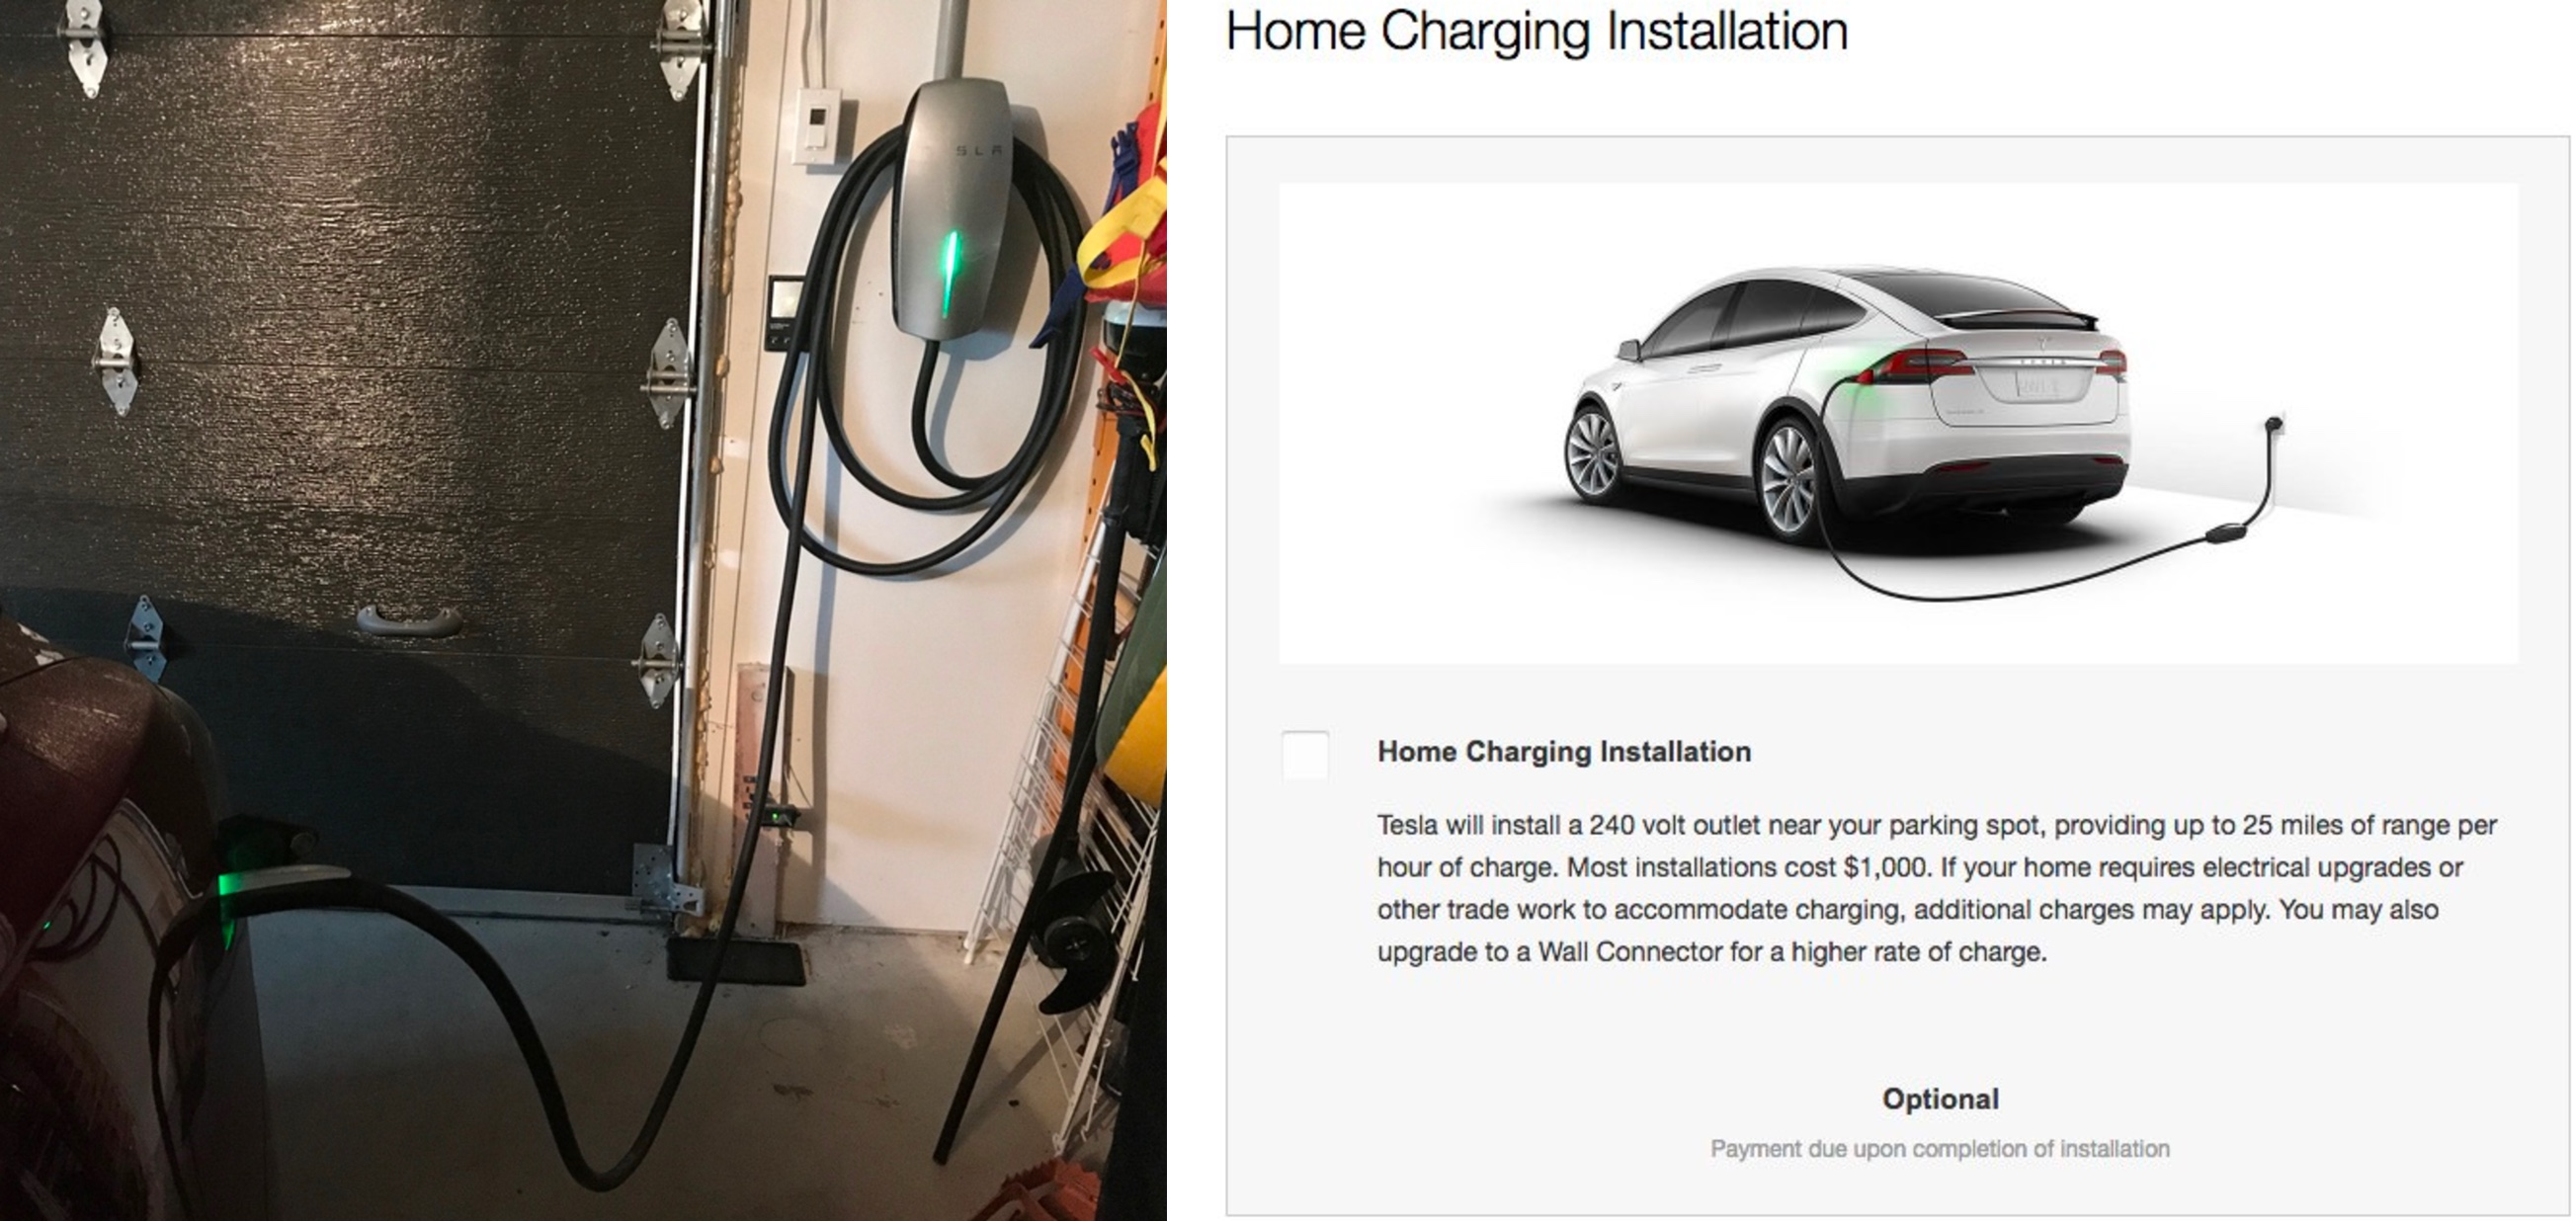 Tesla starts offering home charging installations in certain